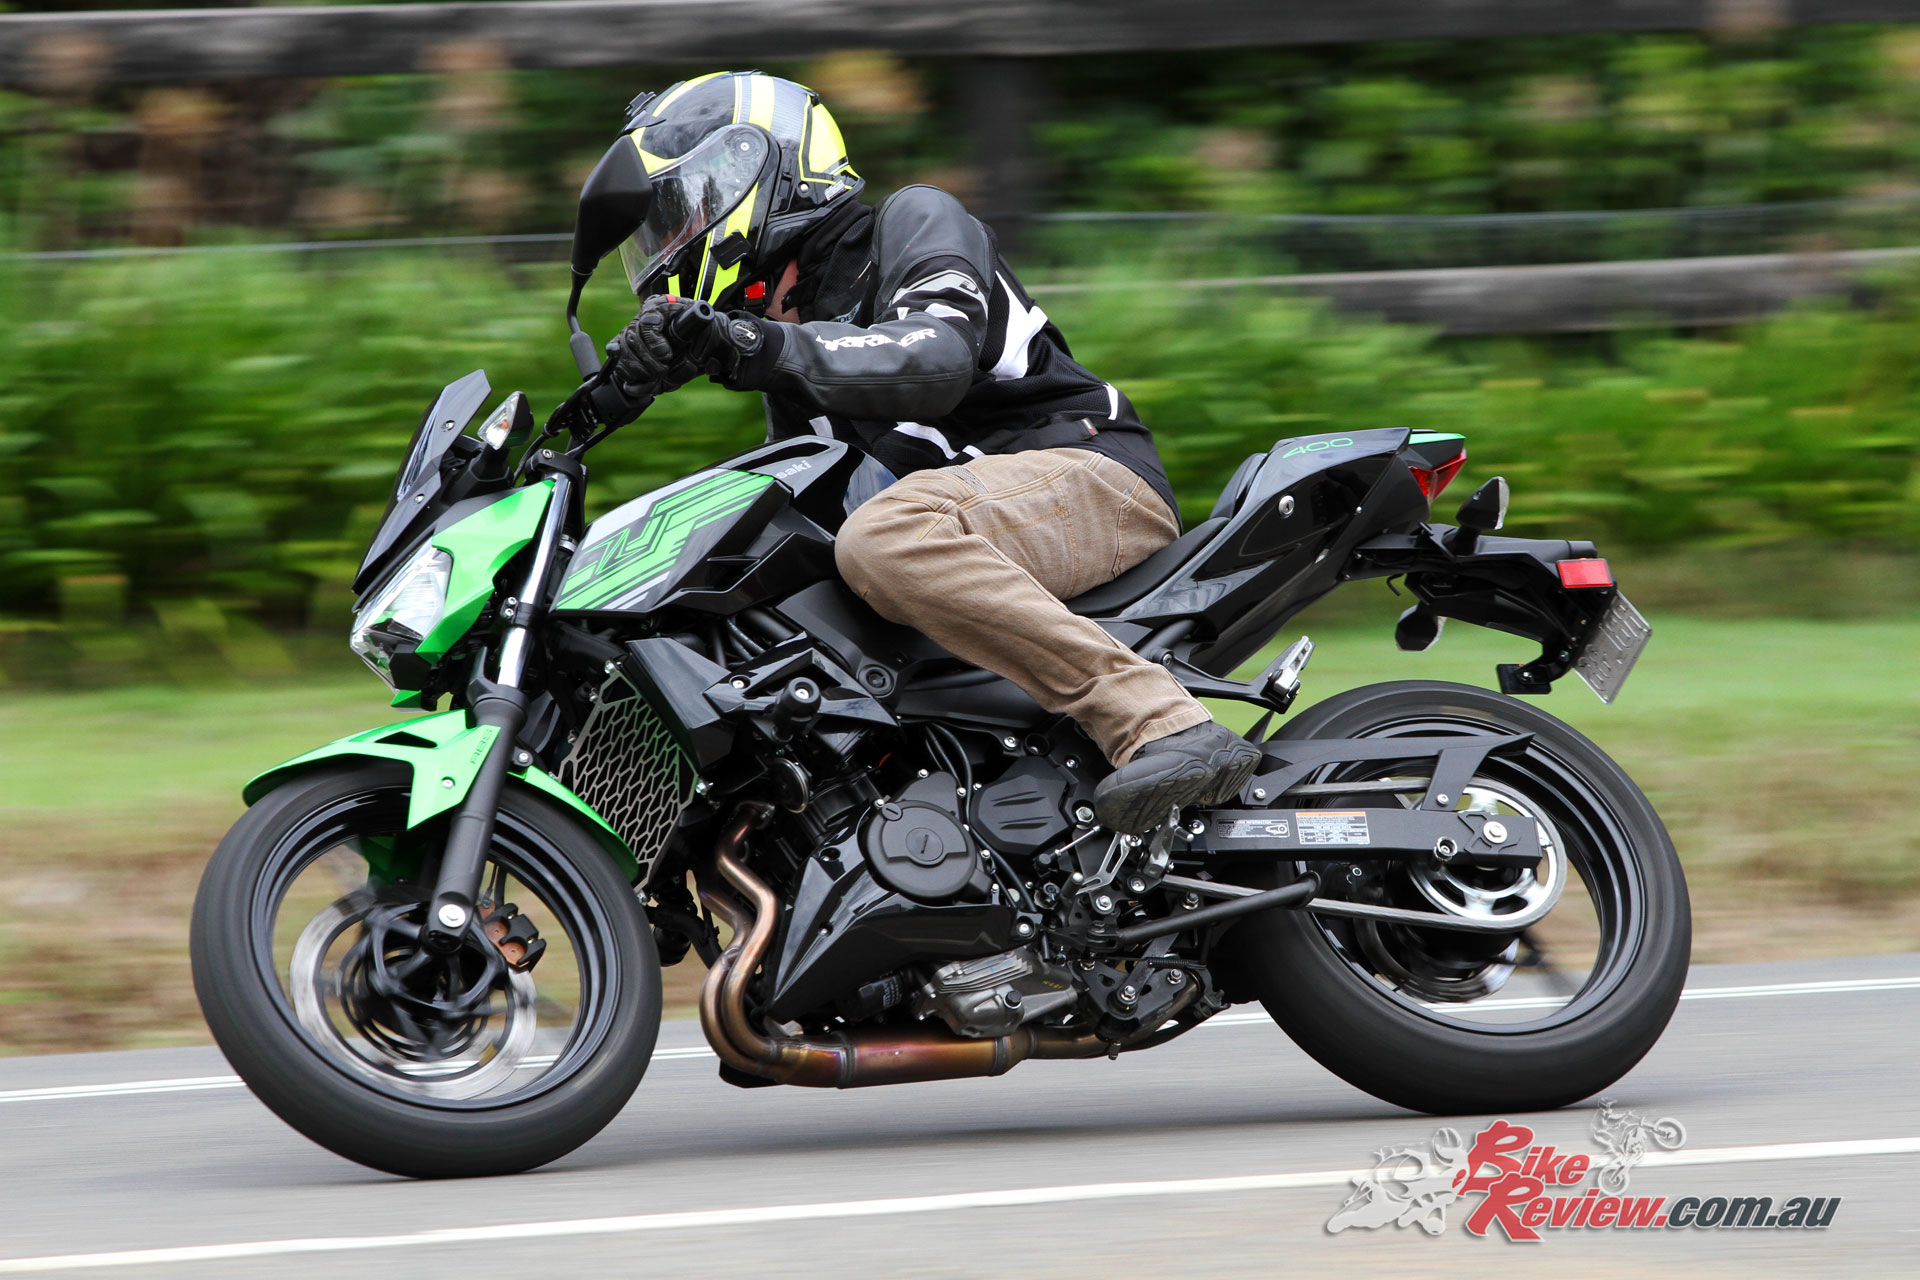 A nimble machine through the twisties, commuting and freeway riding are equally easy